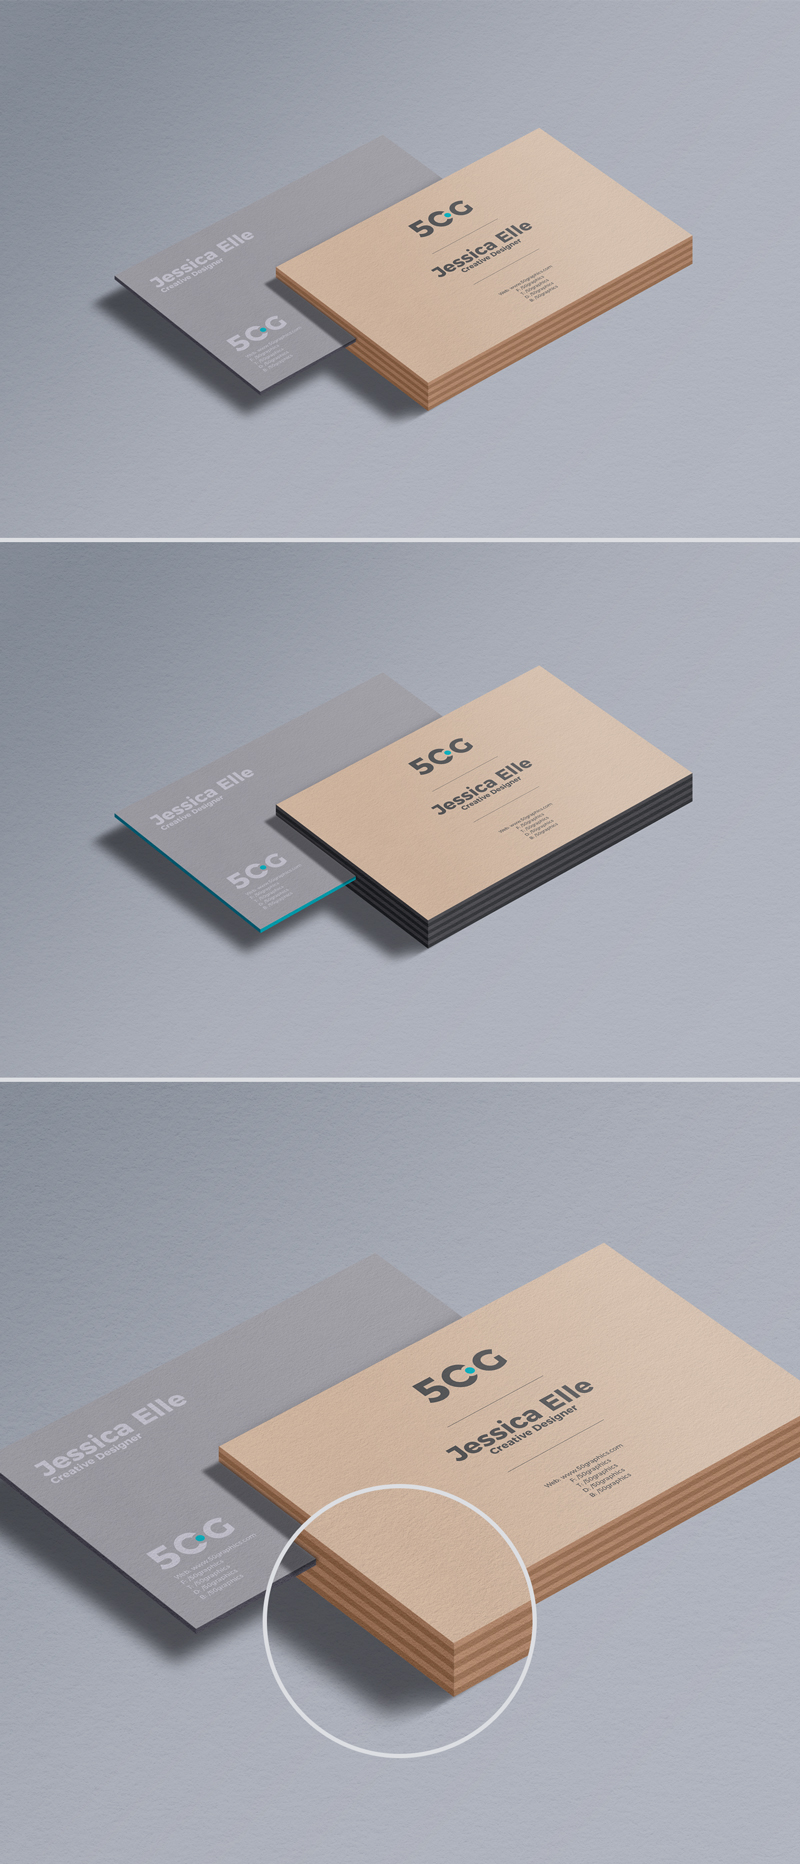 Free-Business-Card-Branding-Mockup-600